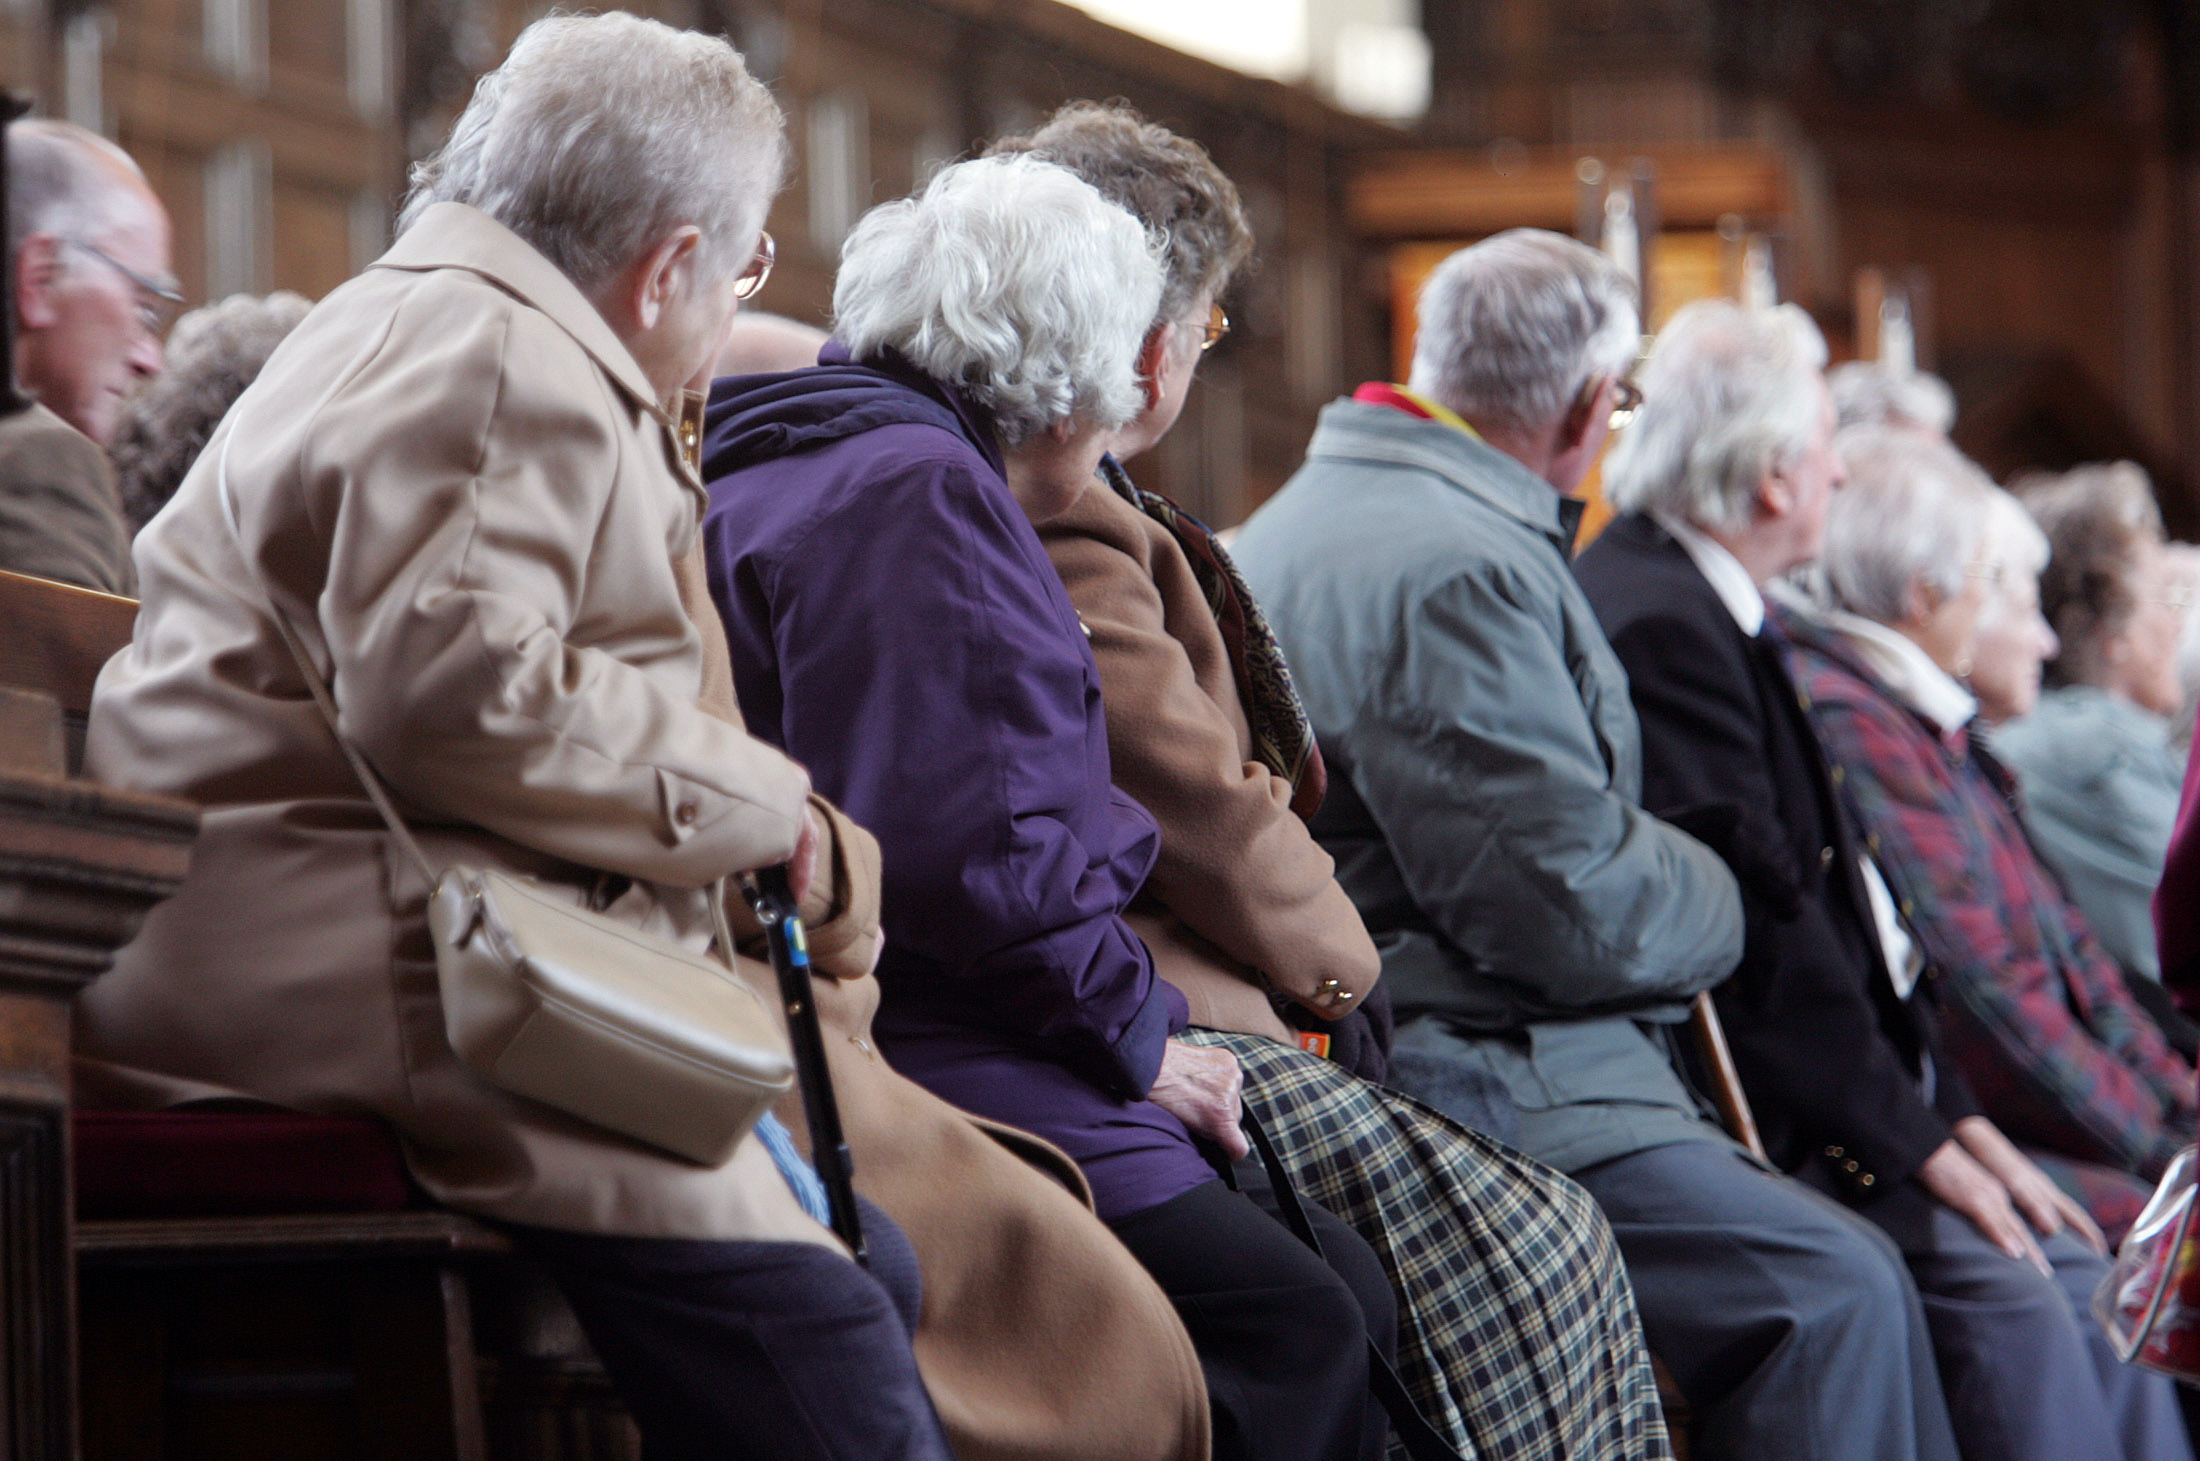 Elderly people listen to a tour guide in a church in central London, November 29, 2005. REUTERS/Toby Melville/Files